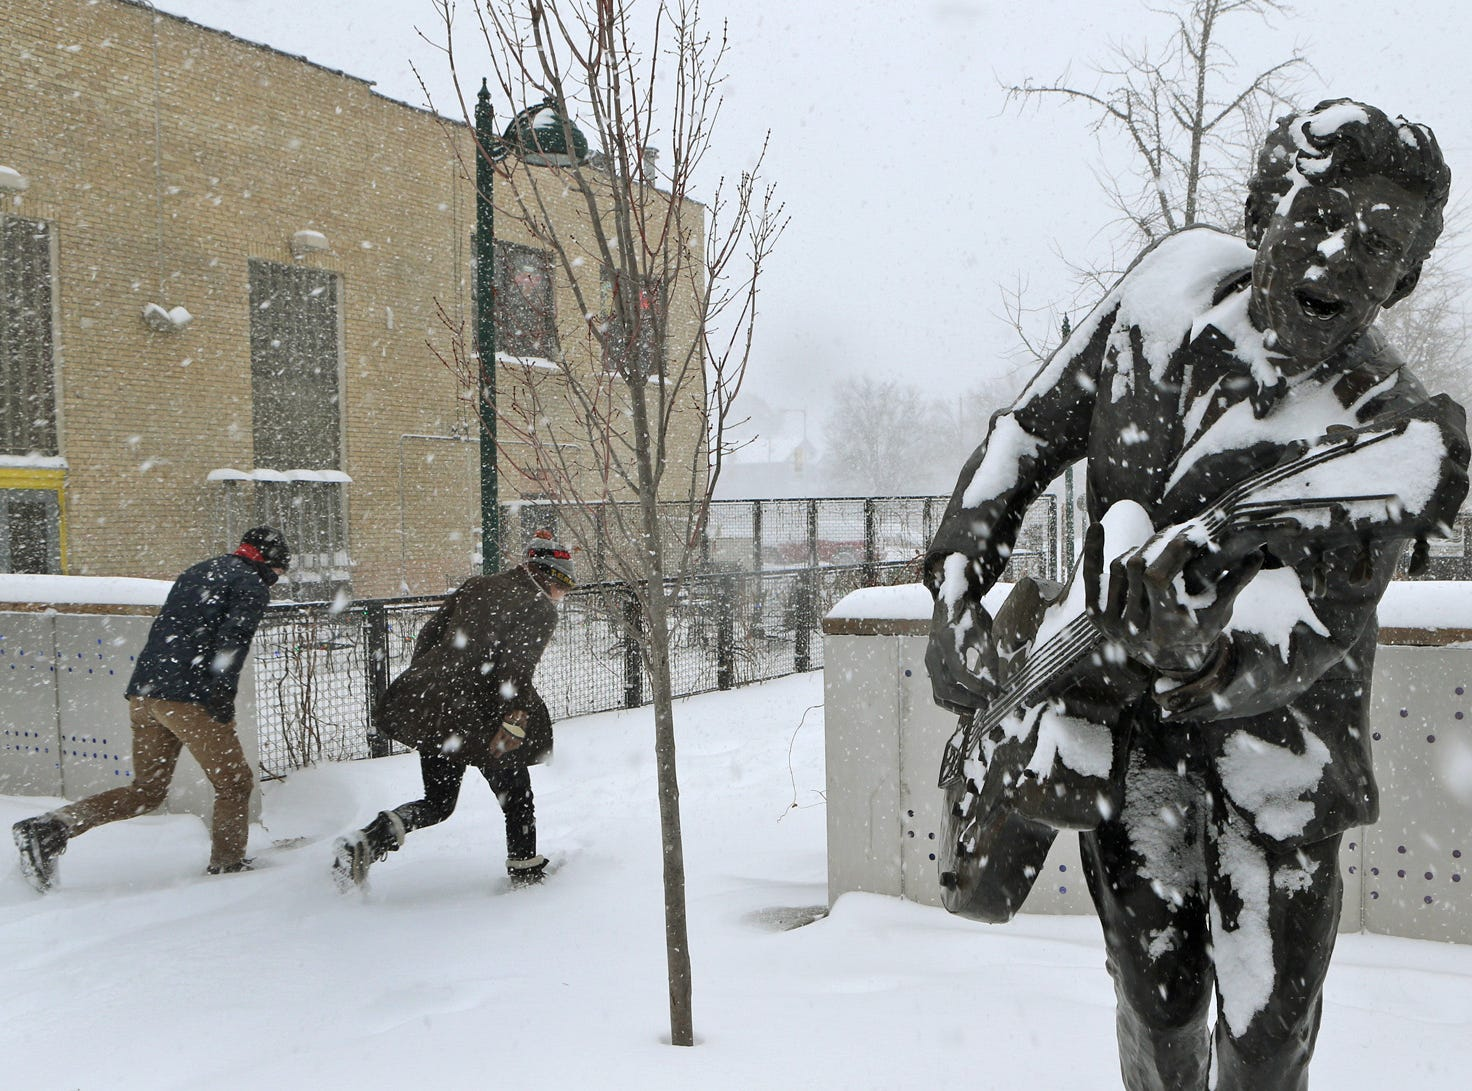 Two people duck into the blowing snow as they leave the U City Loop next to the statue of Chuck Berry on Sunday morning, Jan. 5, 2014, in St.ÊLouis.  Heavy snow combined with strong winds and bitter cold created a dangerous winter mix Sunday over much of Missouri.